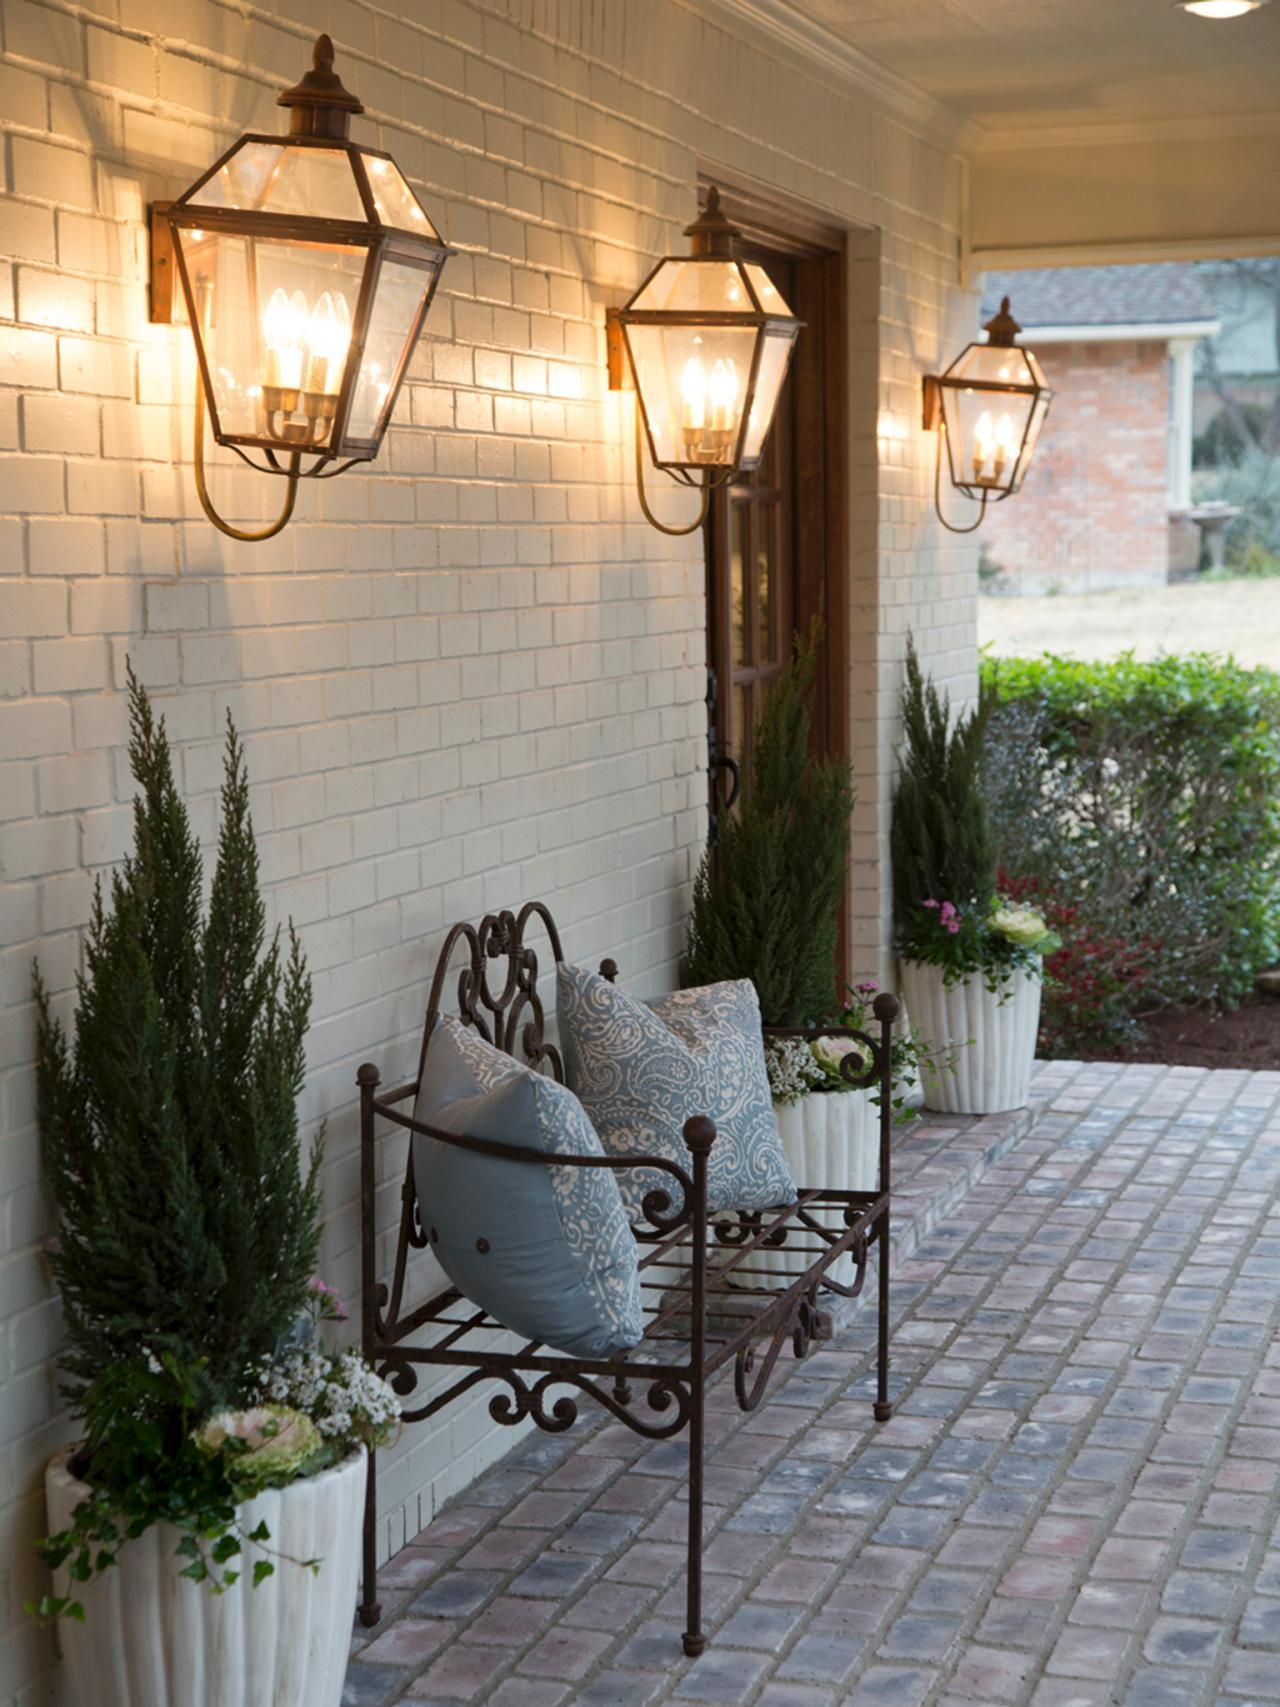 Creating French Country In The Texas Suburbs Hgtv S Fixer Upper With Chip And Joanna Gaines Front P French Country House Country Front Porches House Exterior